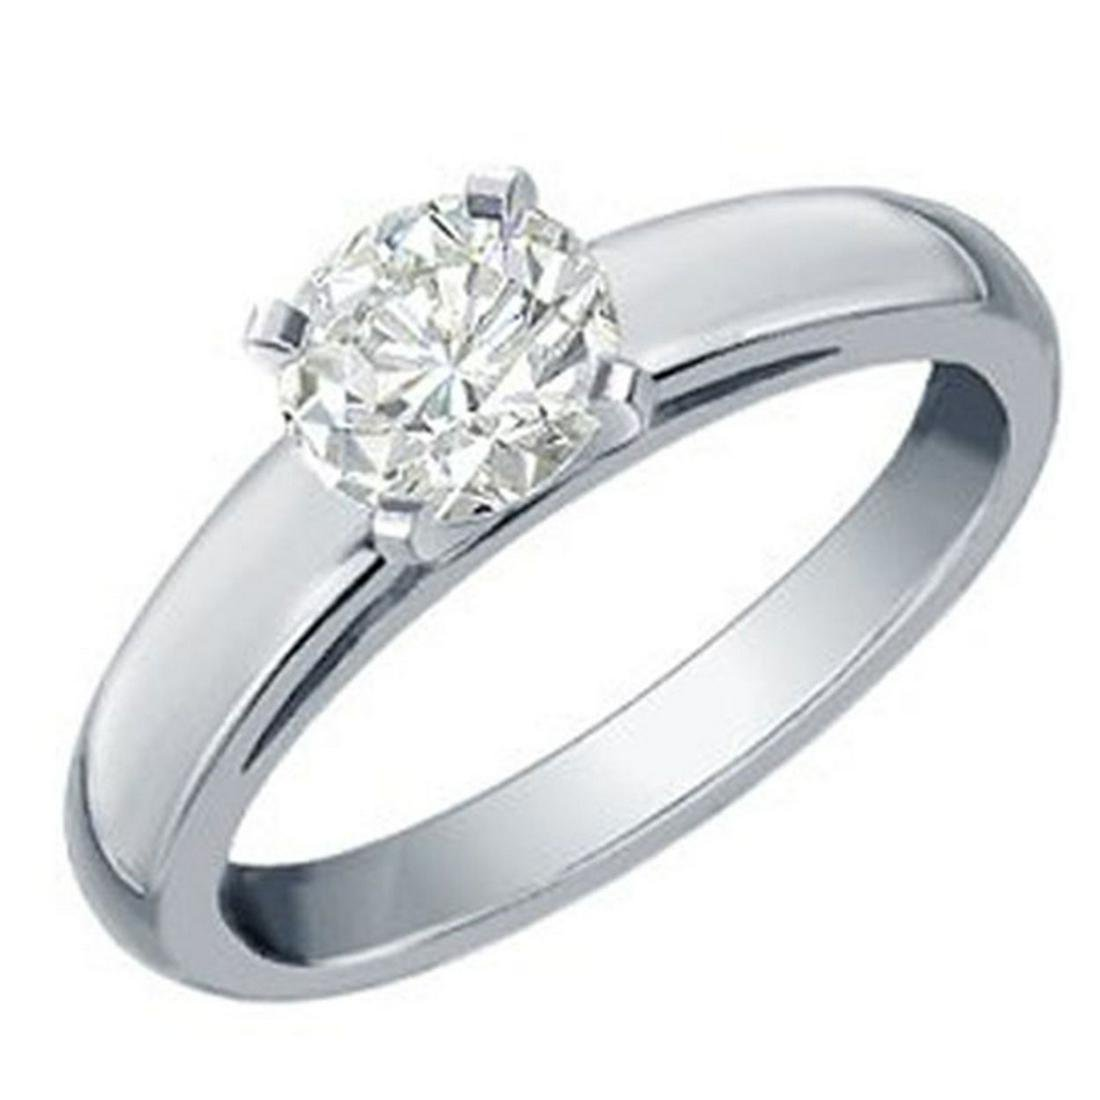 1.0 ctw VS/SI Diamond Solitaire Ring 14K White Gold